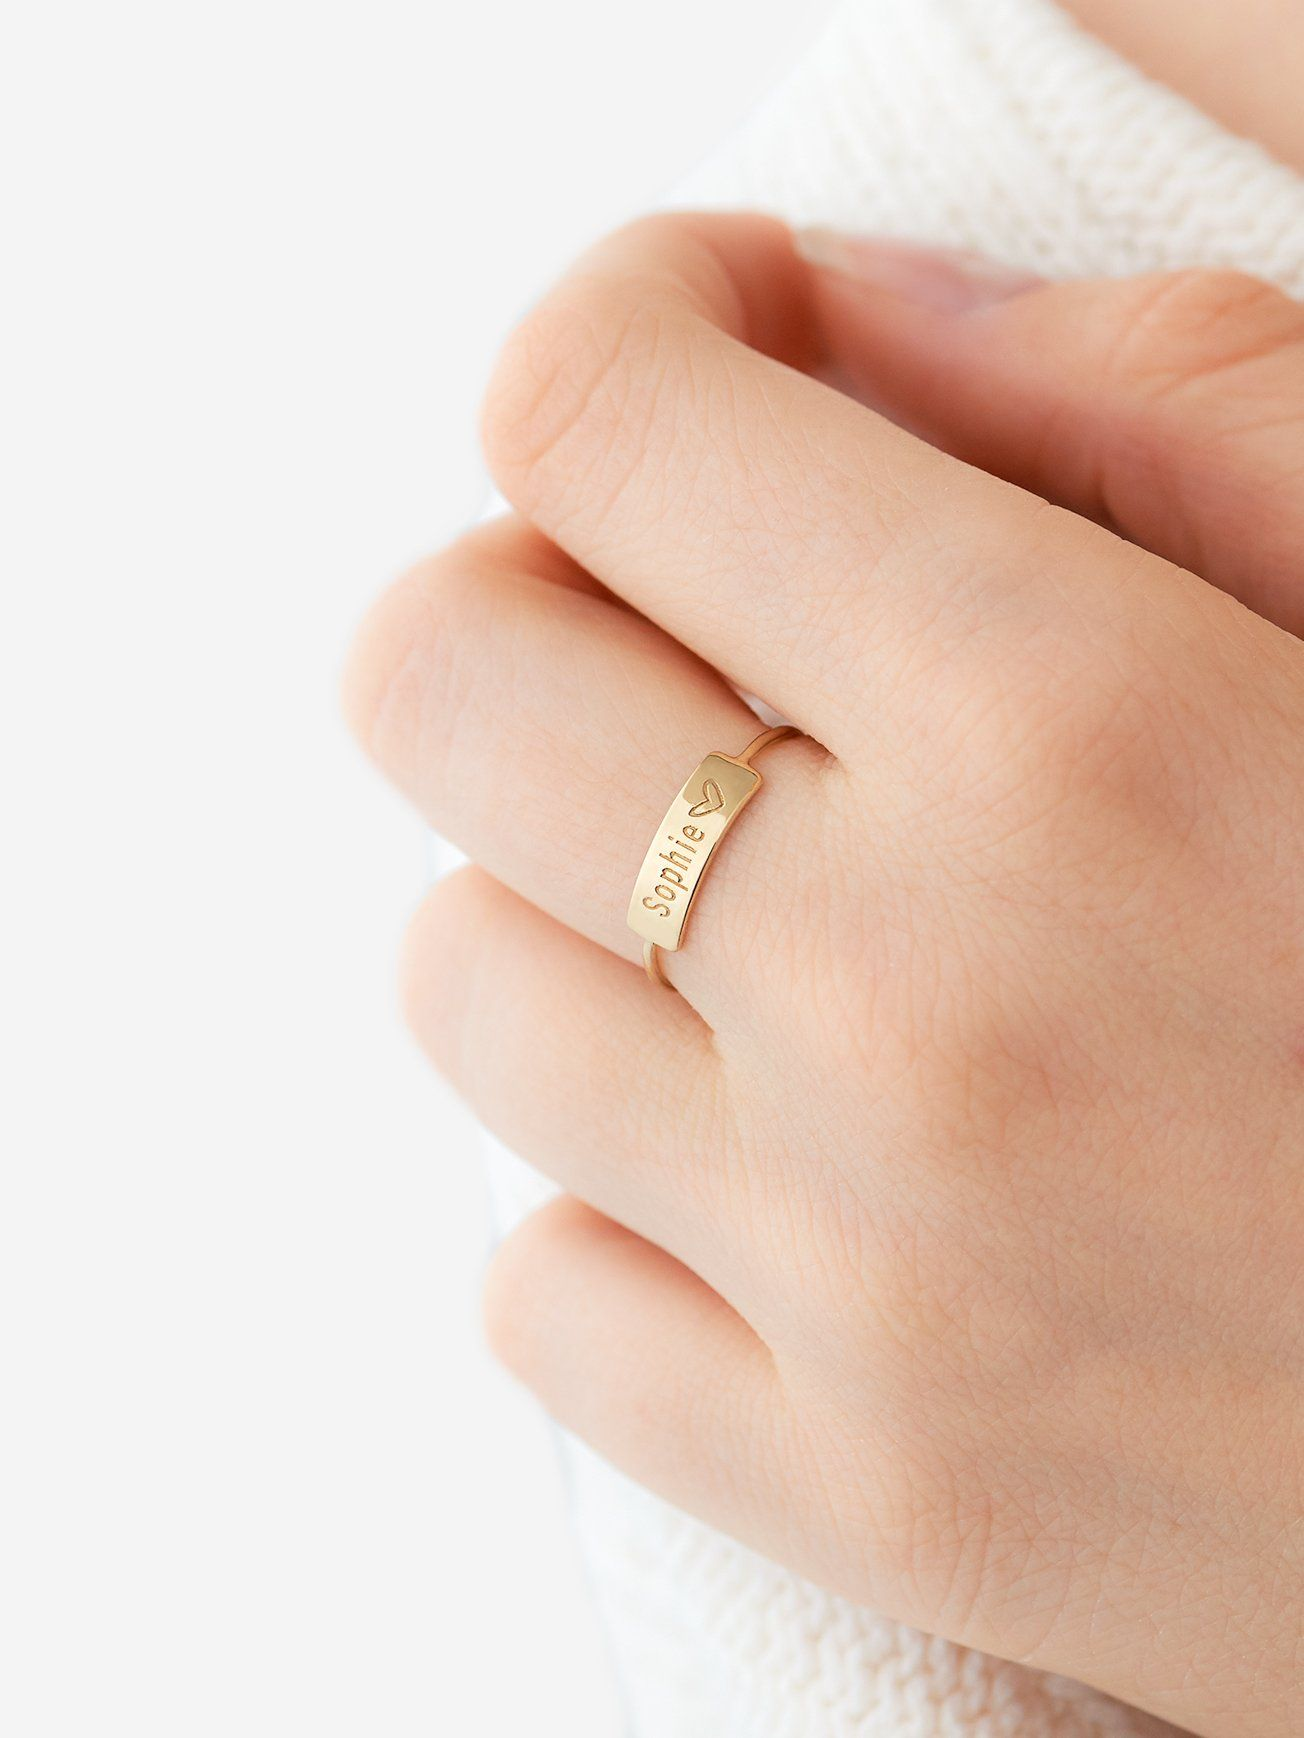 Piercing jewelry names  Small Personalized Name Ring    K Gold Over Sterling Silver